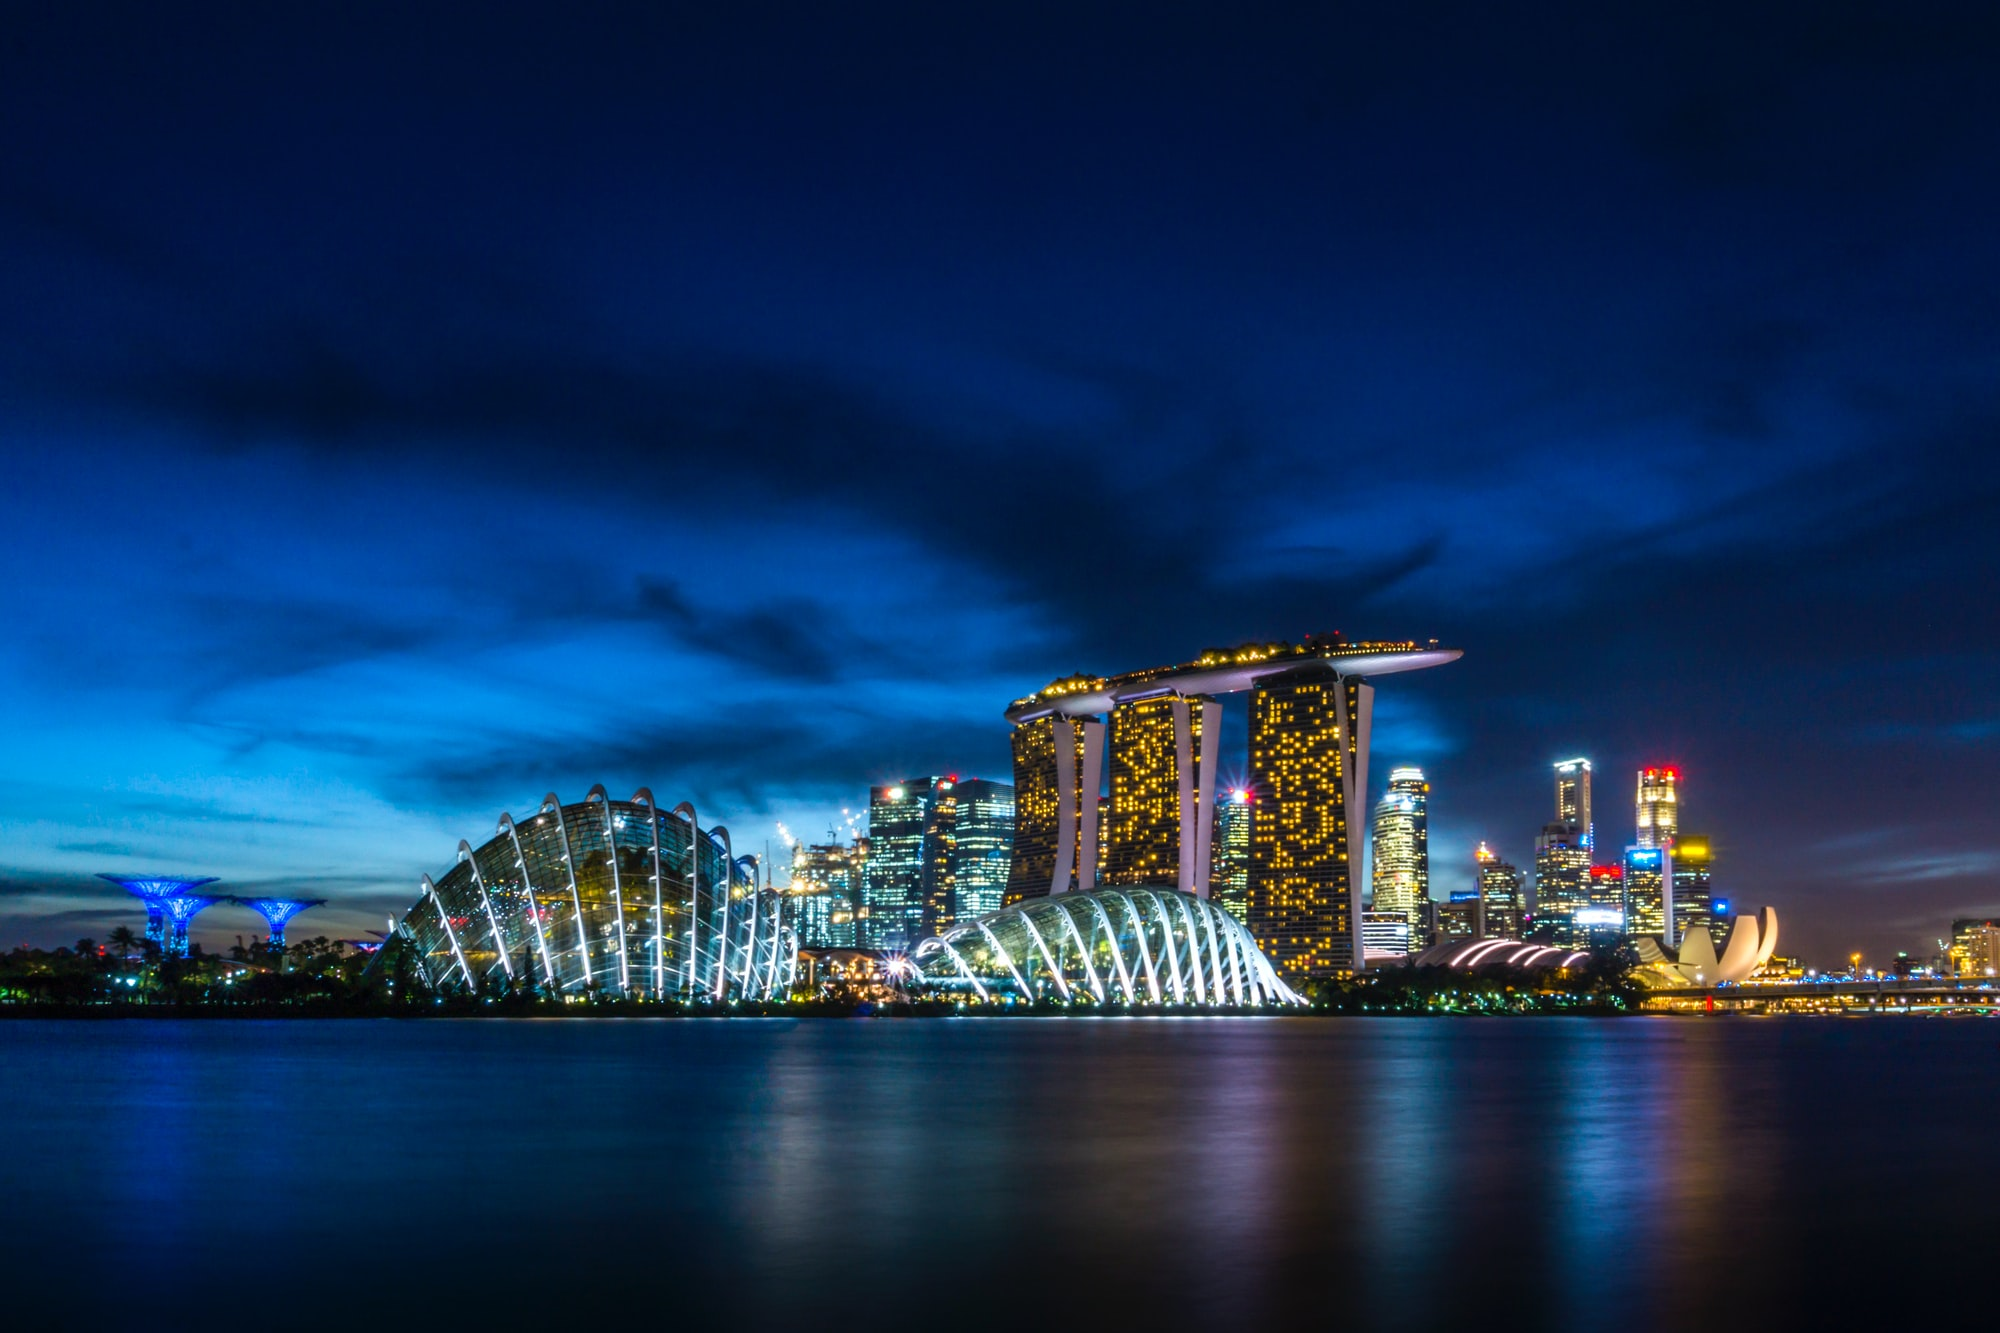 GST Singapore | A Complete Guide For Business Owners